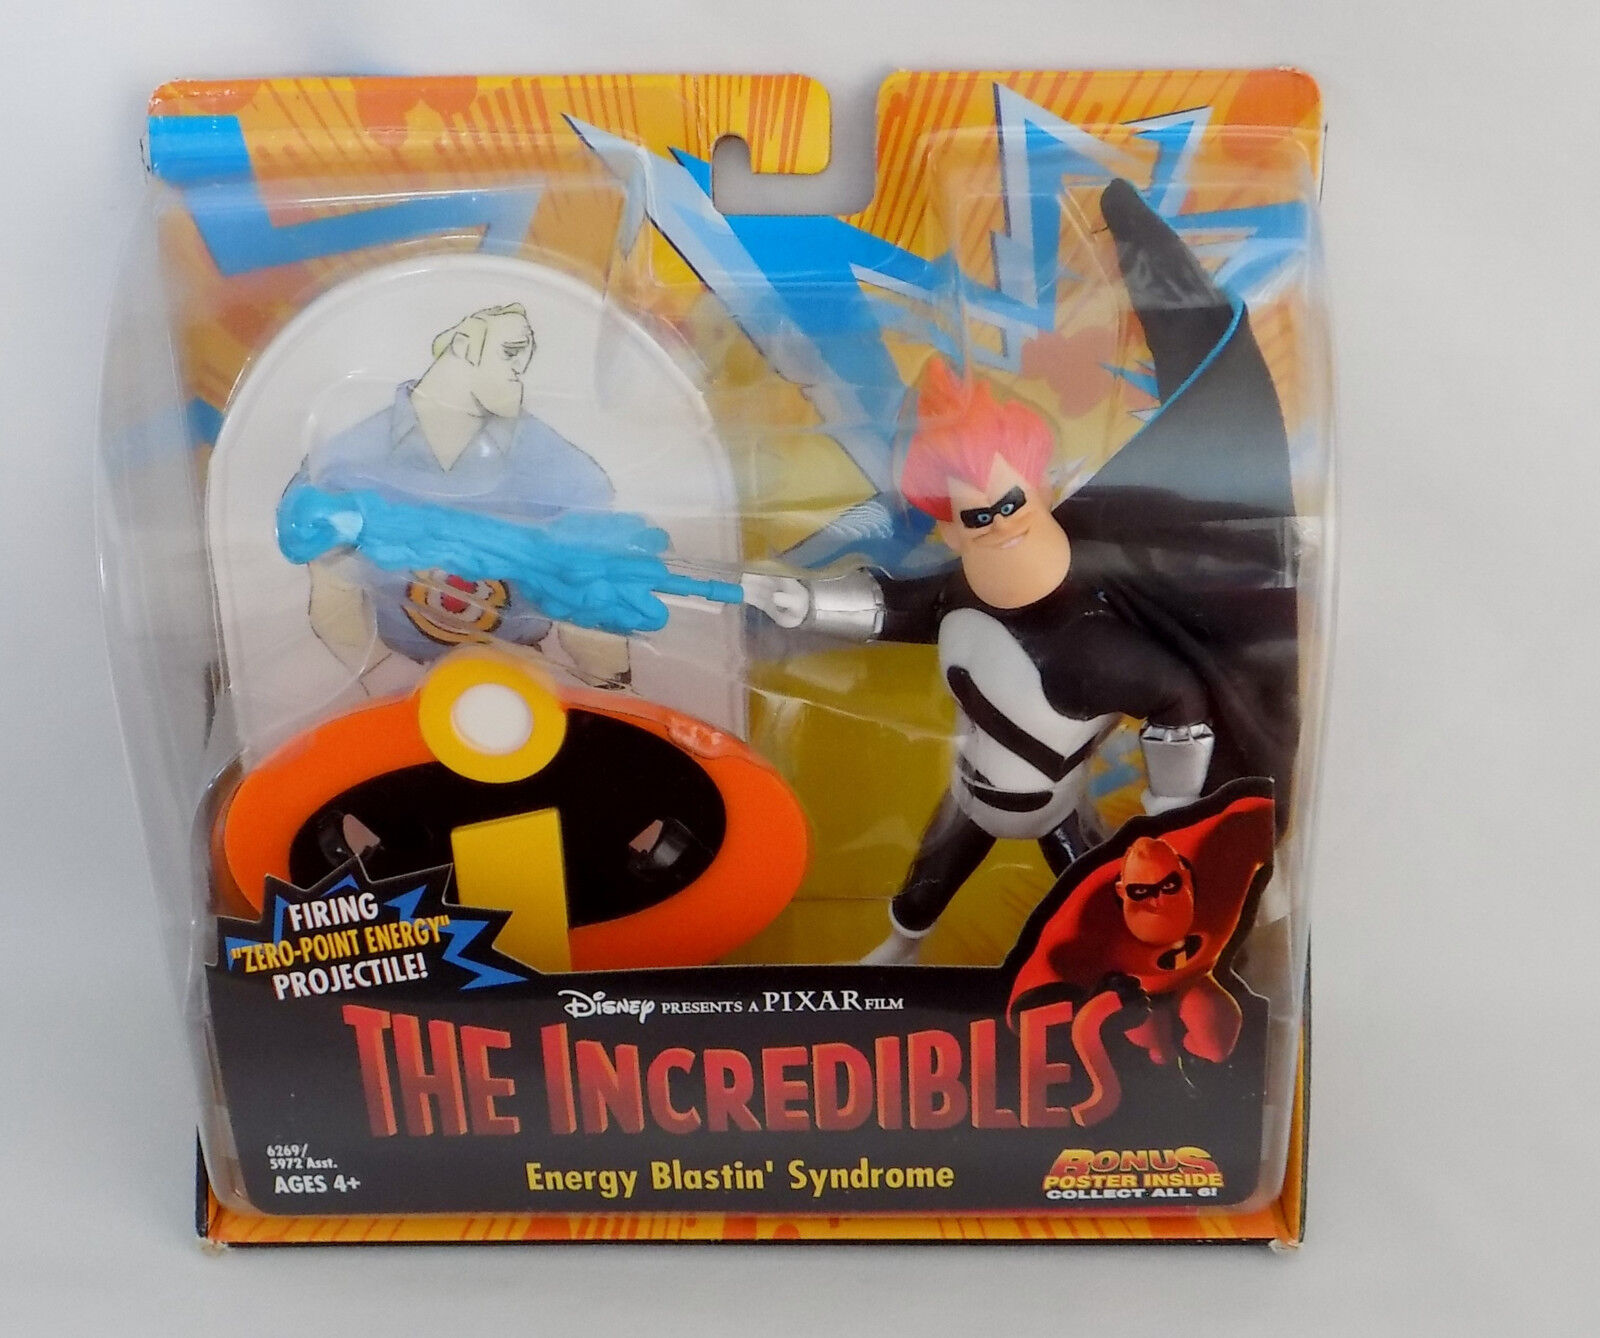 Disney The Incredibles Bad Guy Energy Blastin Syndrome Figure Toy New For Sale Online